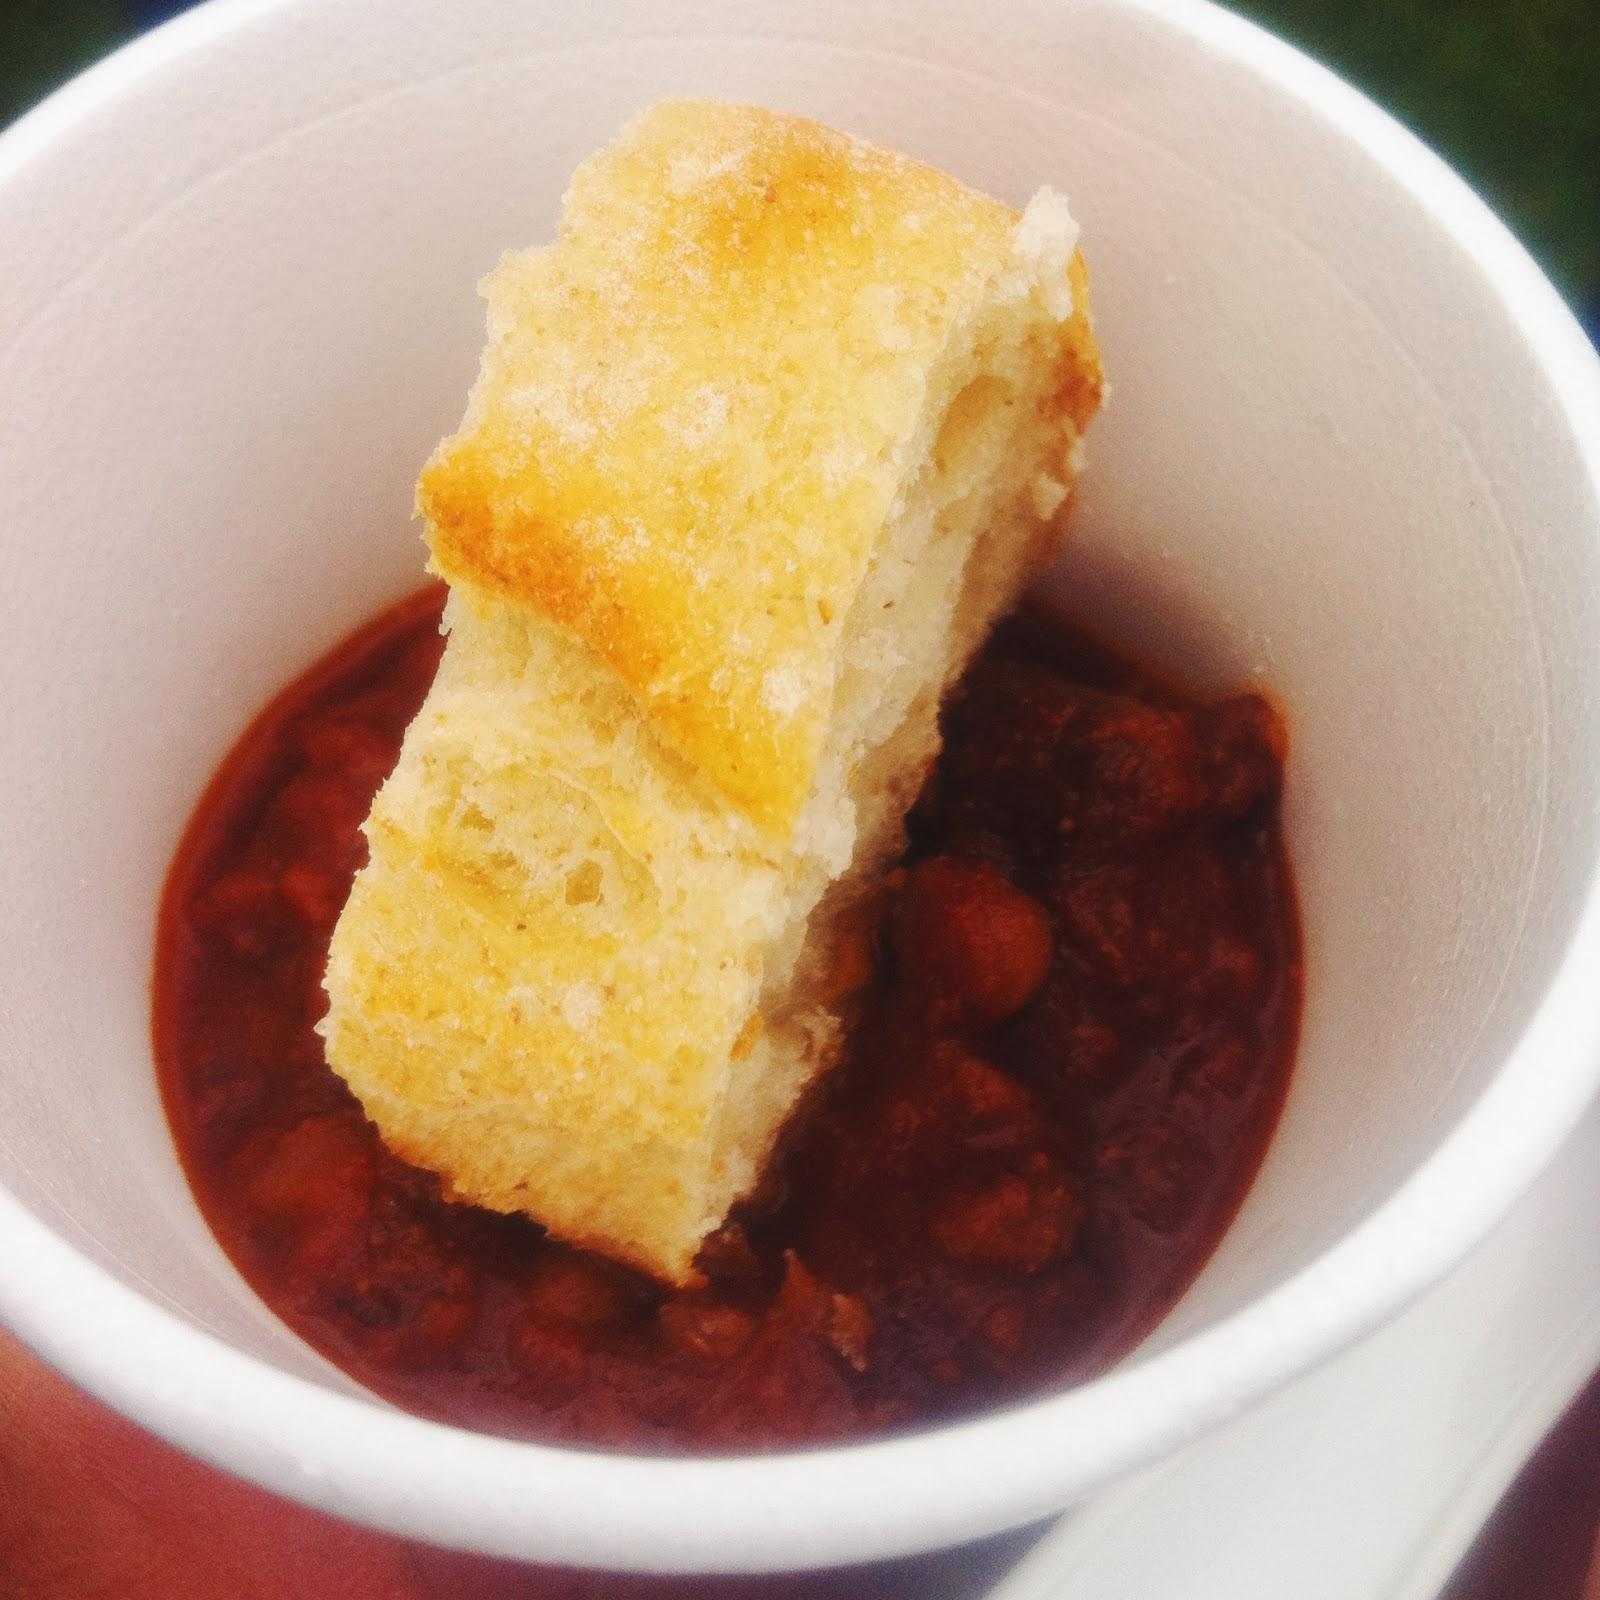 Farmhouse Rules Cornbread Recipe The Staycationer Taste Of Kingston 23rd Annual Chilifest